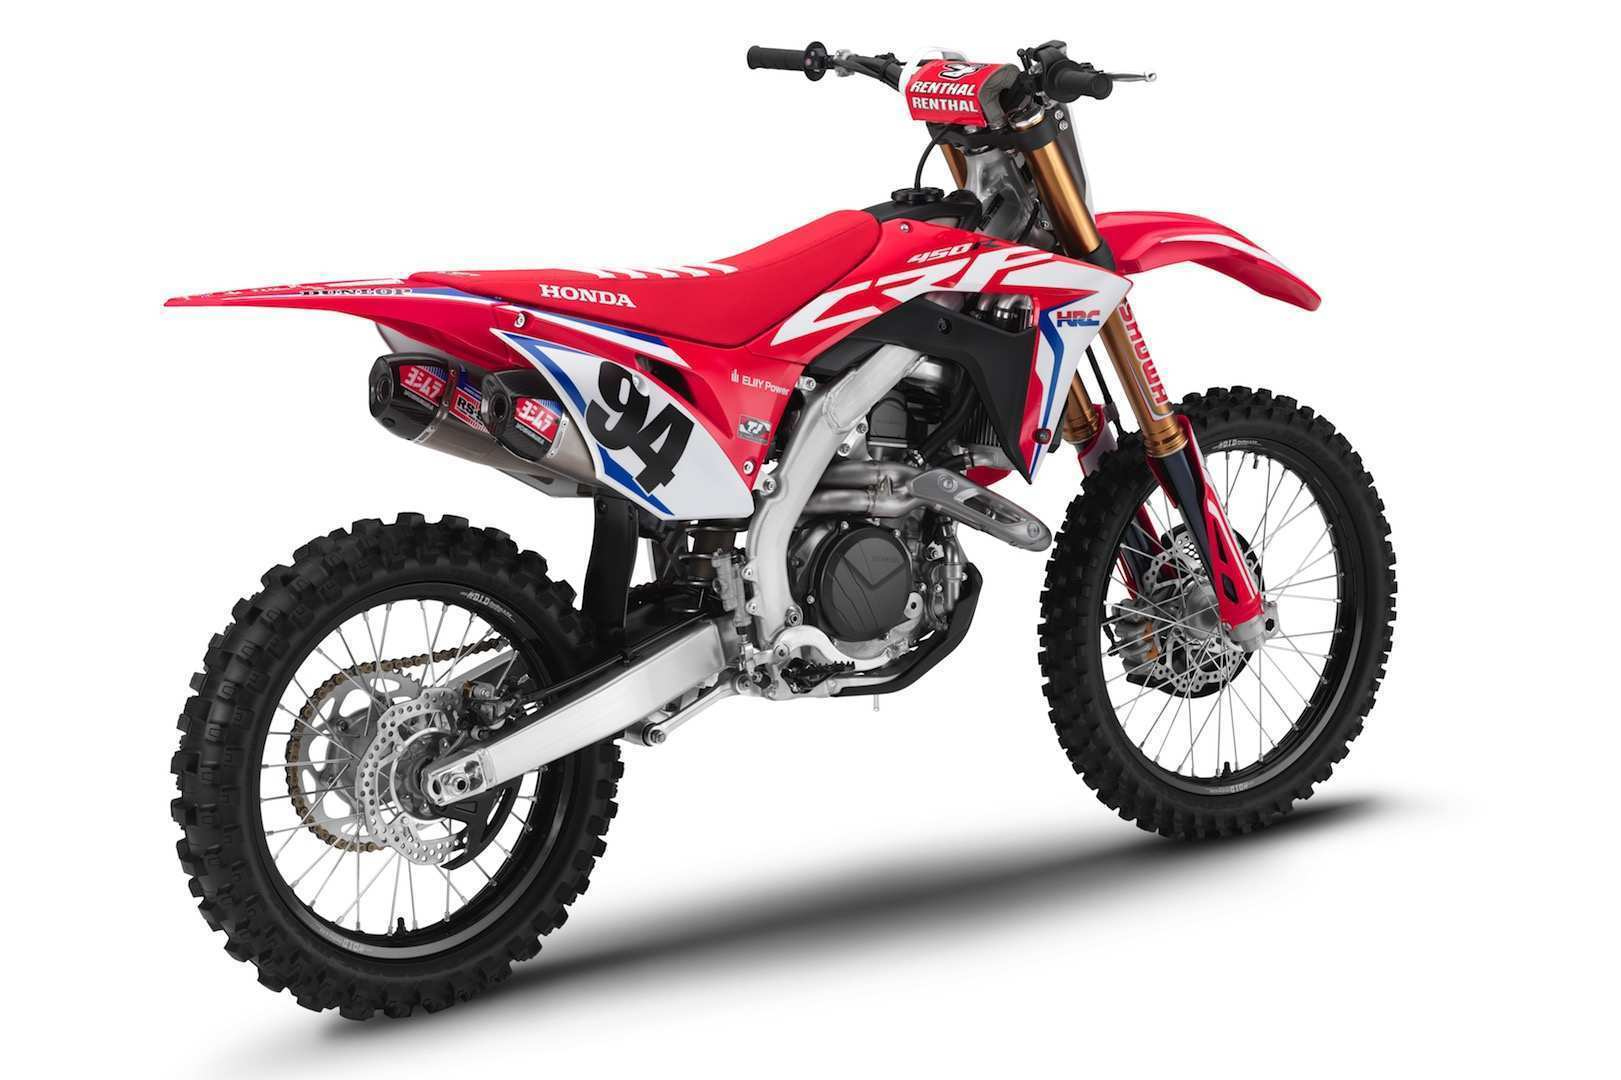 31 New 2019 Honda Dirt Bikes Ratings with 2019 Honda Dirt Bikes